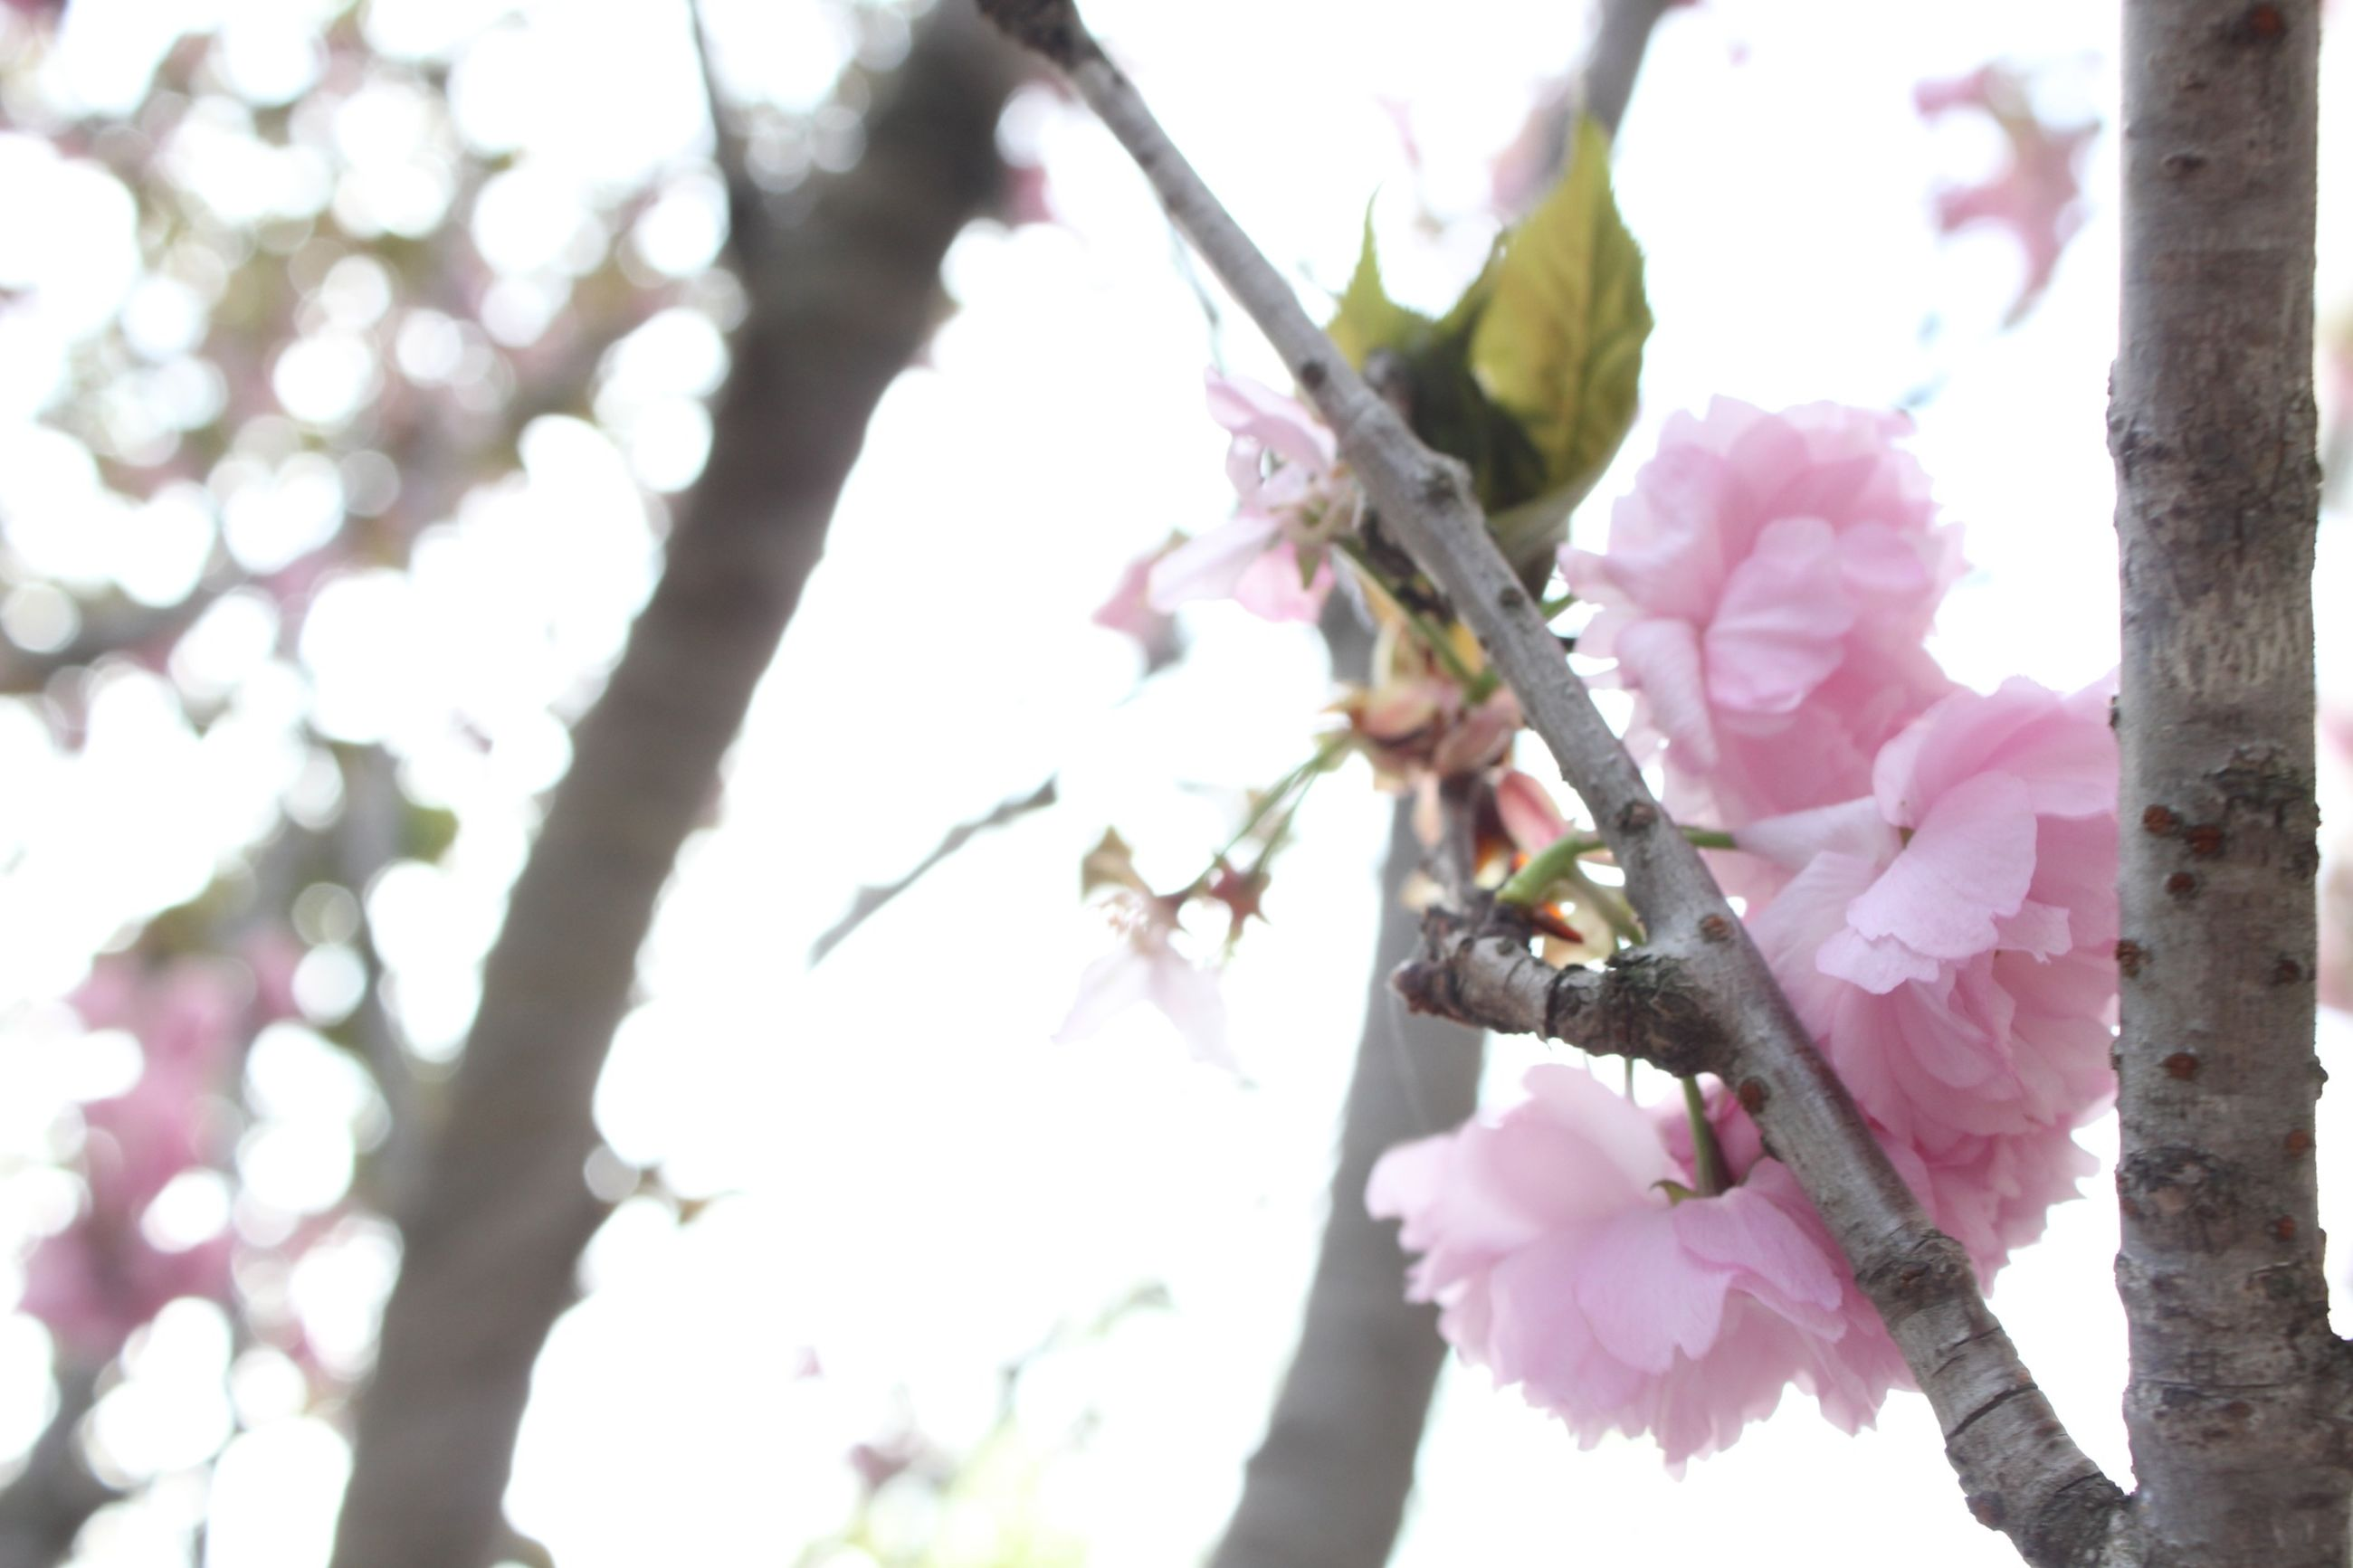 flower, branch, tree, low angle view, freshness, fragility, pink color, growth, beauty in nature, nature, focus on foreground, blossom, cherry blossom, close-up, sky, petal, springtime, cherry tree, clear sky, in bloom